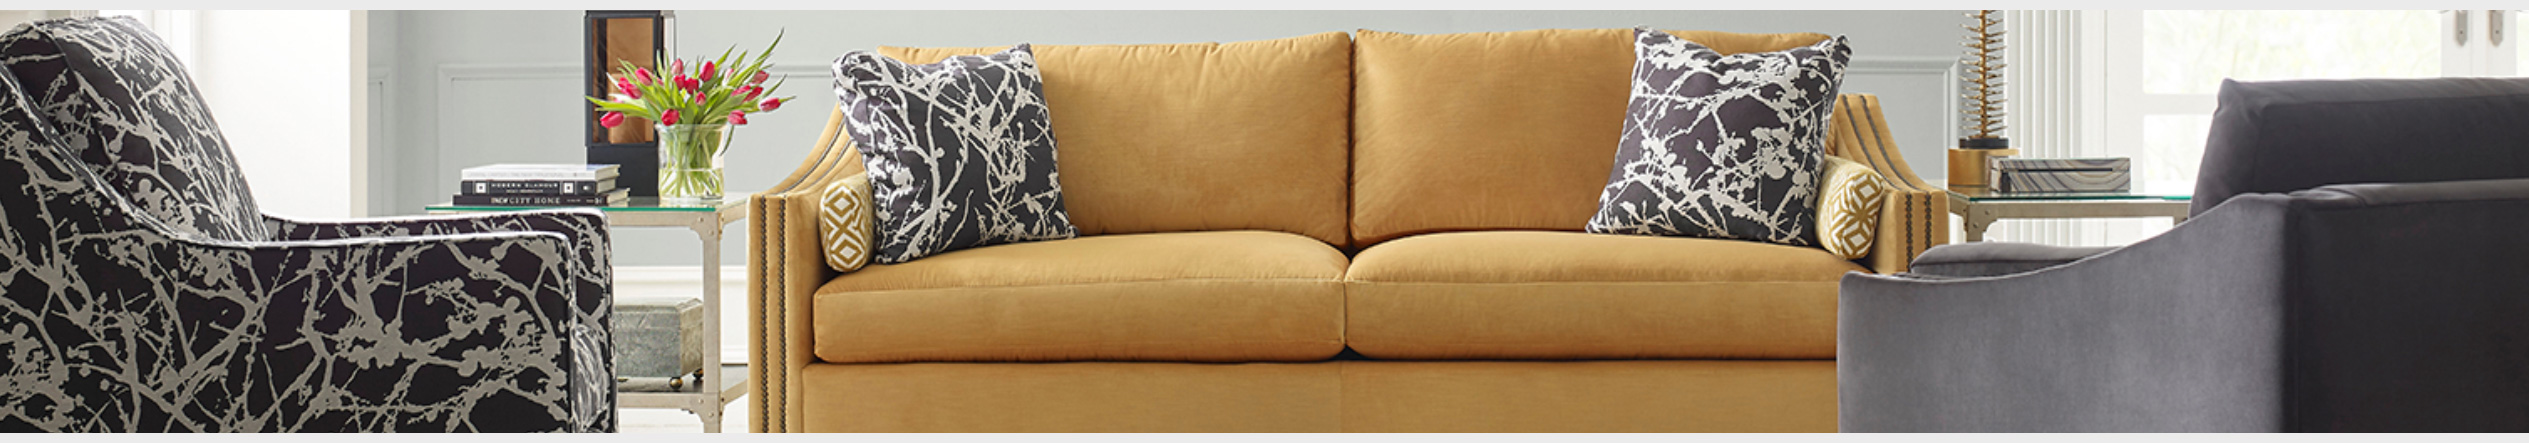 Tremendous Sofas For Sale At Jordans Furniture Stores In Ma Nh Ri And Ct Alphanode Cool Chair Designs And Ideas Alphanodeonline